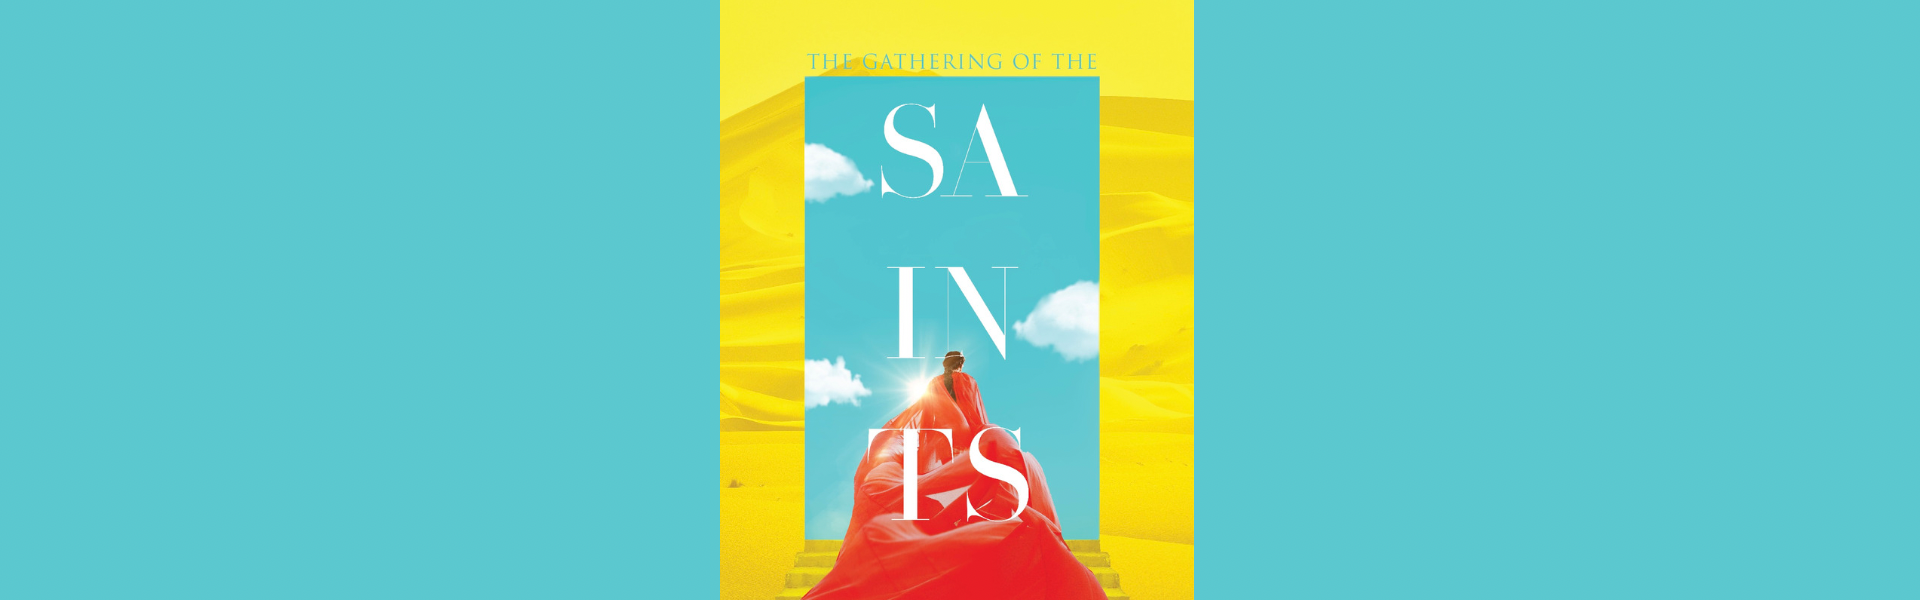 Women Rock Presents: The Gathering Of The SAINTS